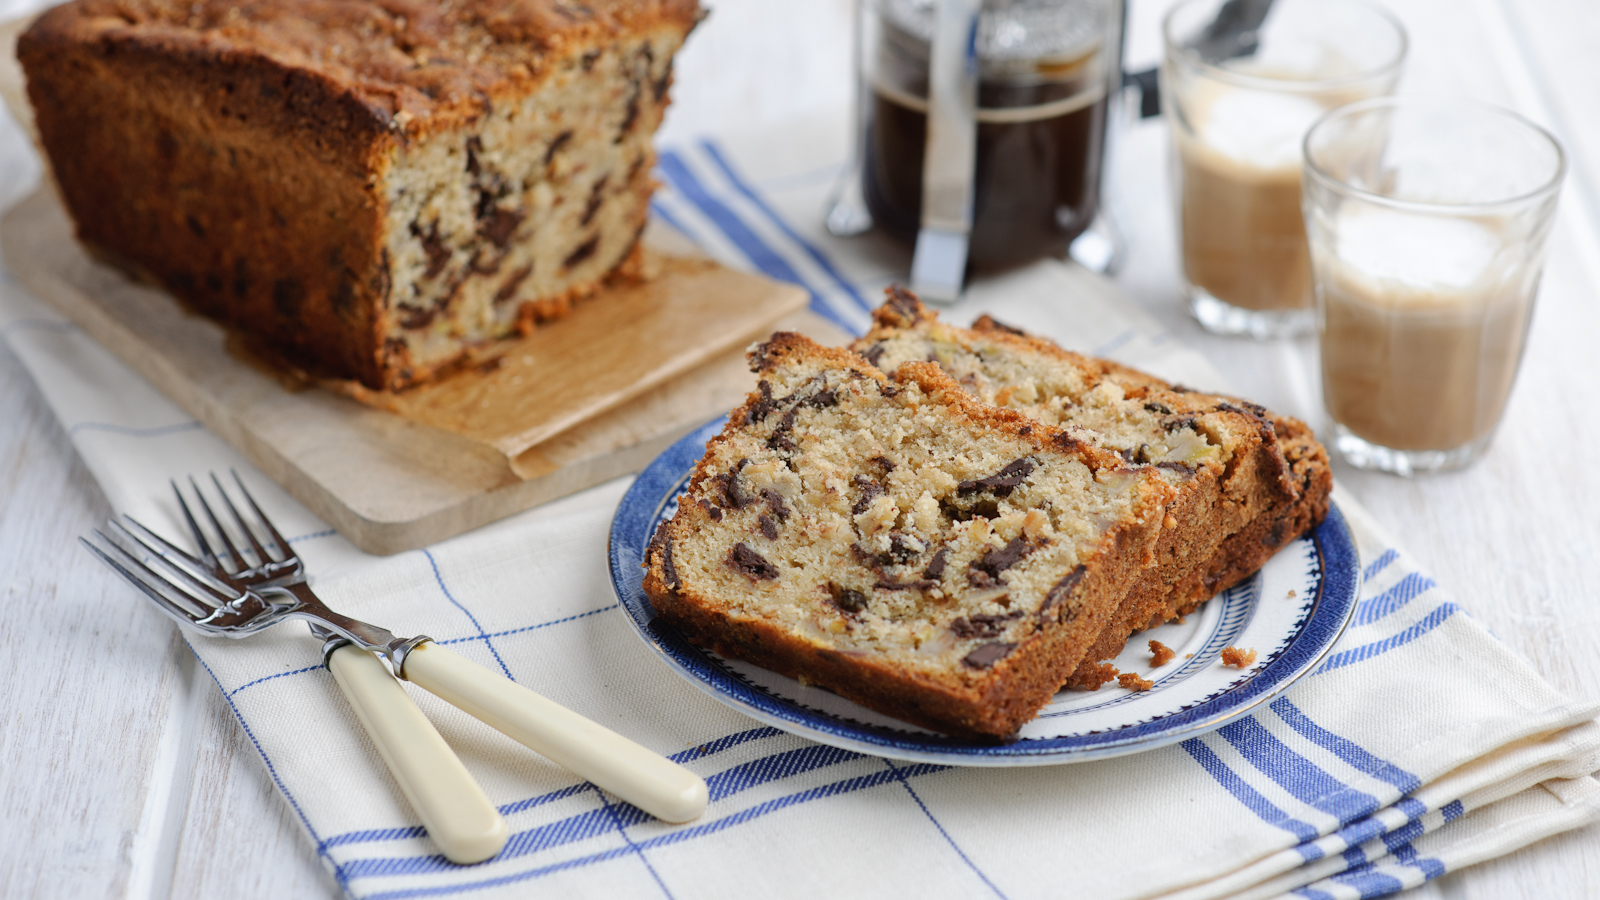 Black banana cake recipe bbc food forumfinder